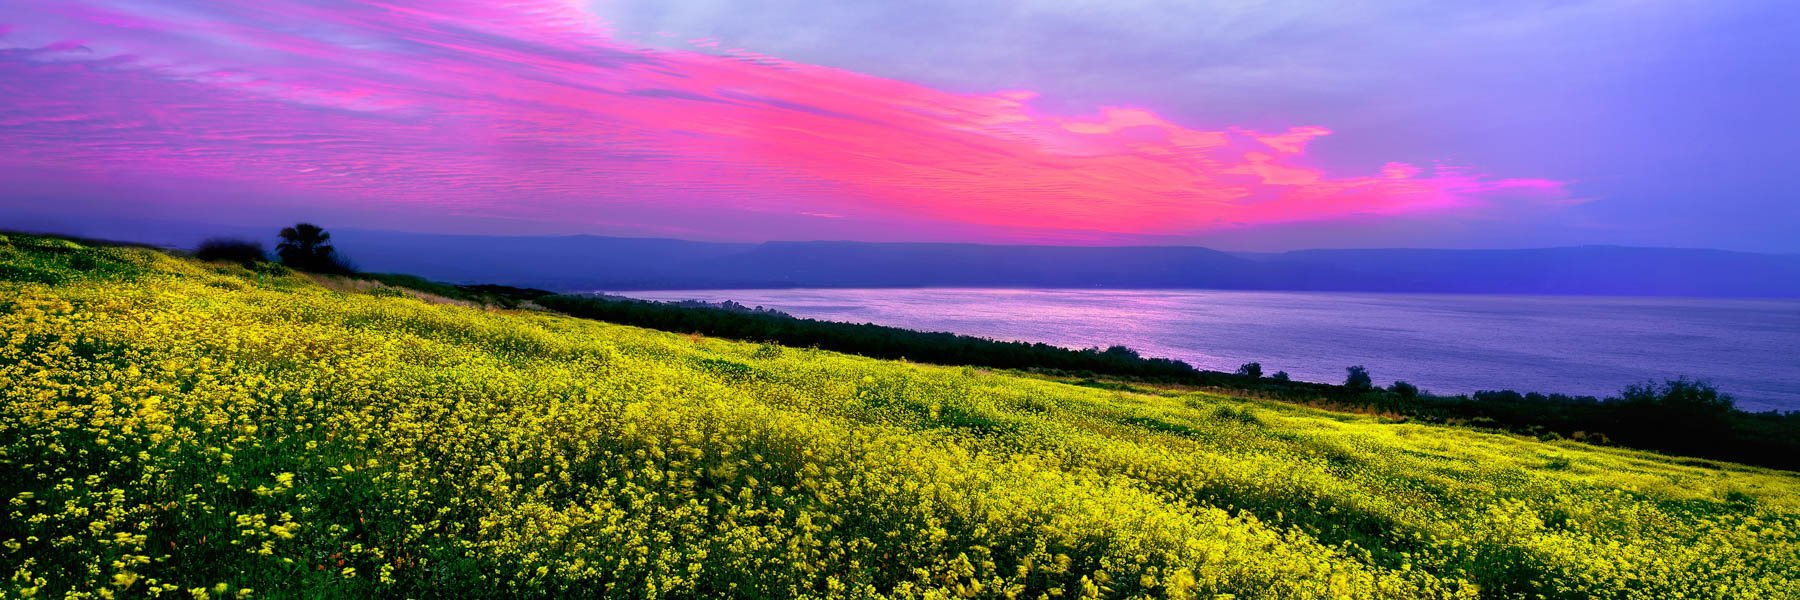 Sunset over the Mount of Beatitudes, Sea of Galilee, Israel.